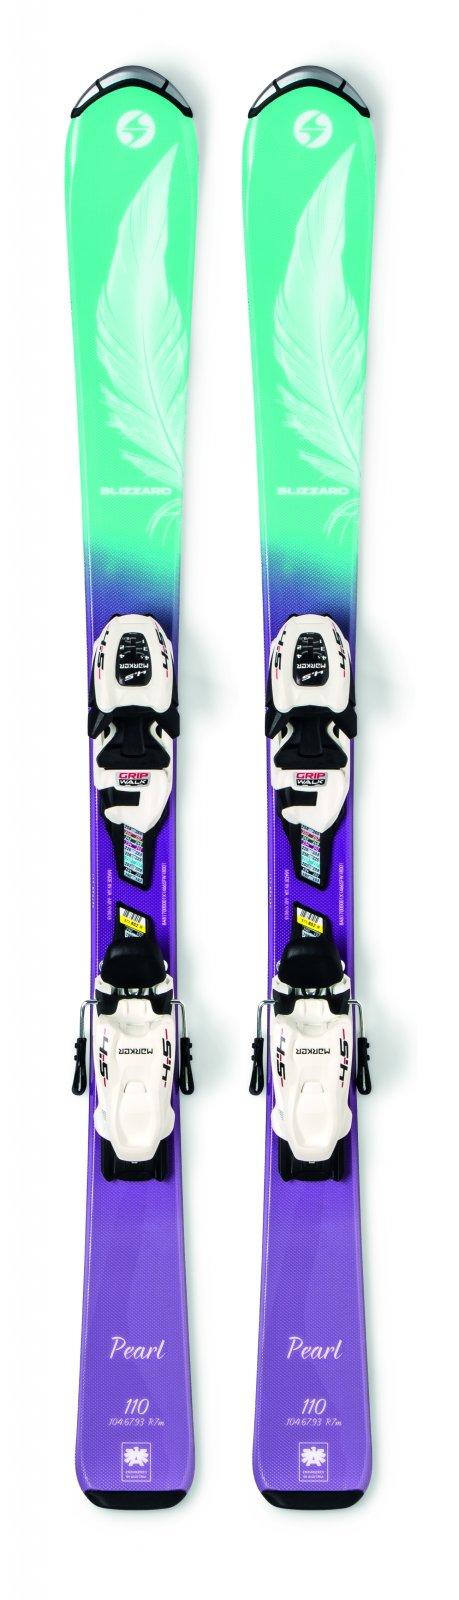 2020 Blizzard Pearl Jr Skis w/ FDT Jr 4.5 Binding